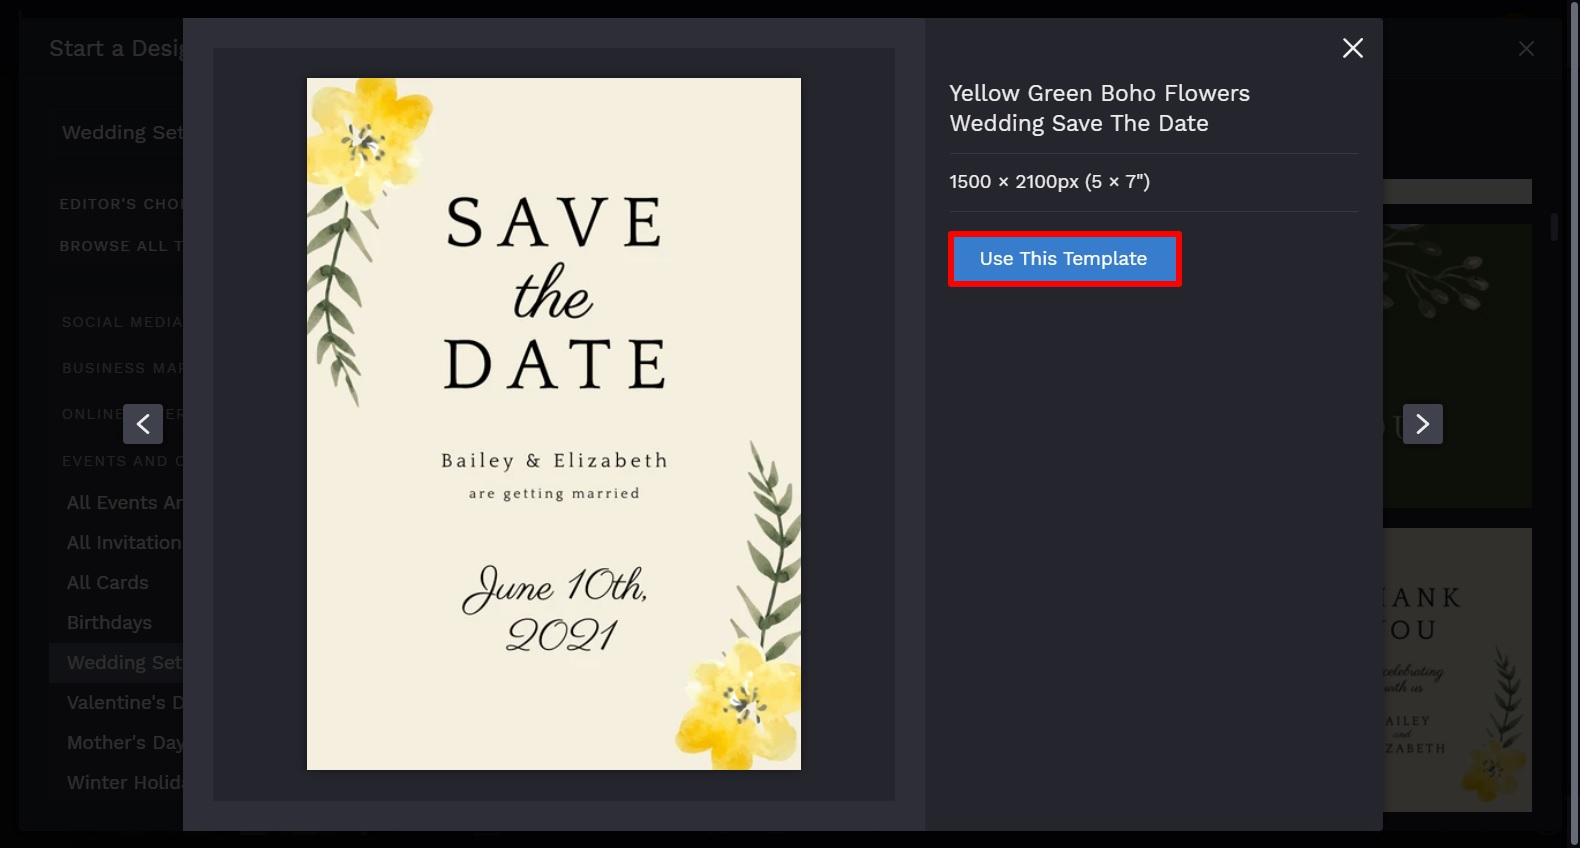 save the date template by BeFunky Graphic Designer